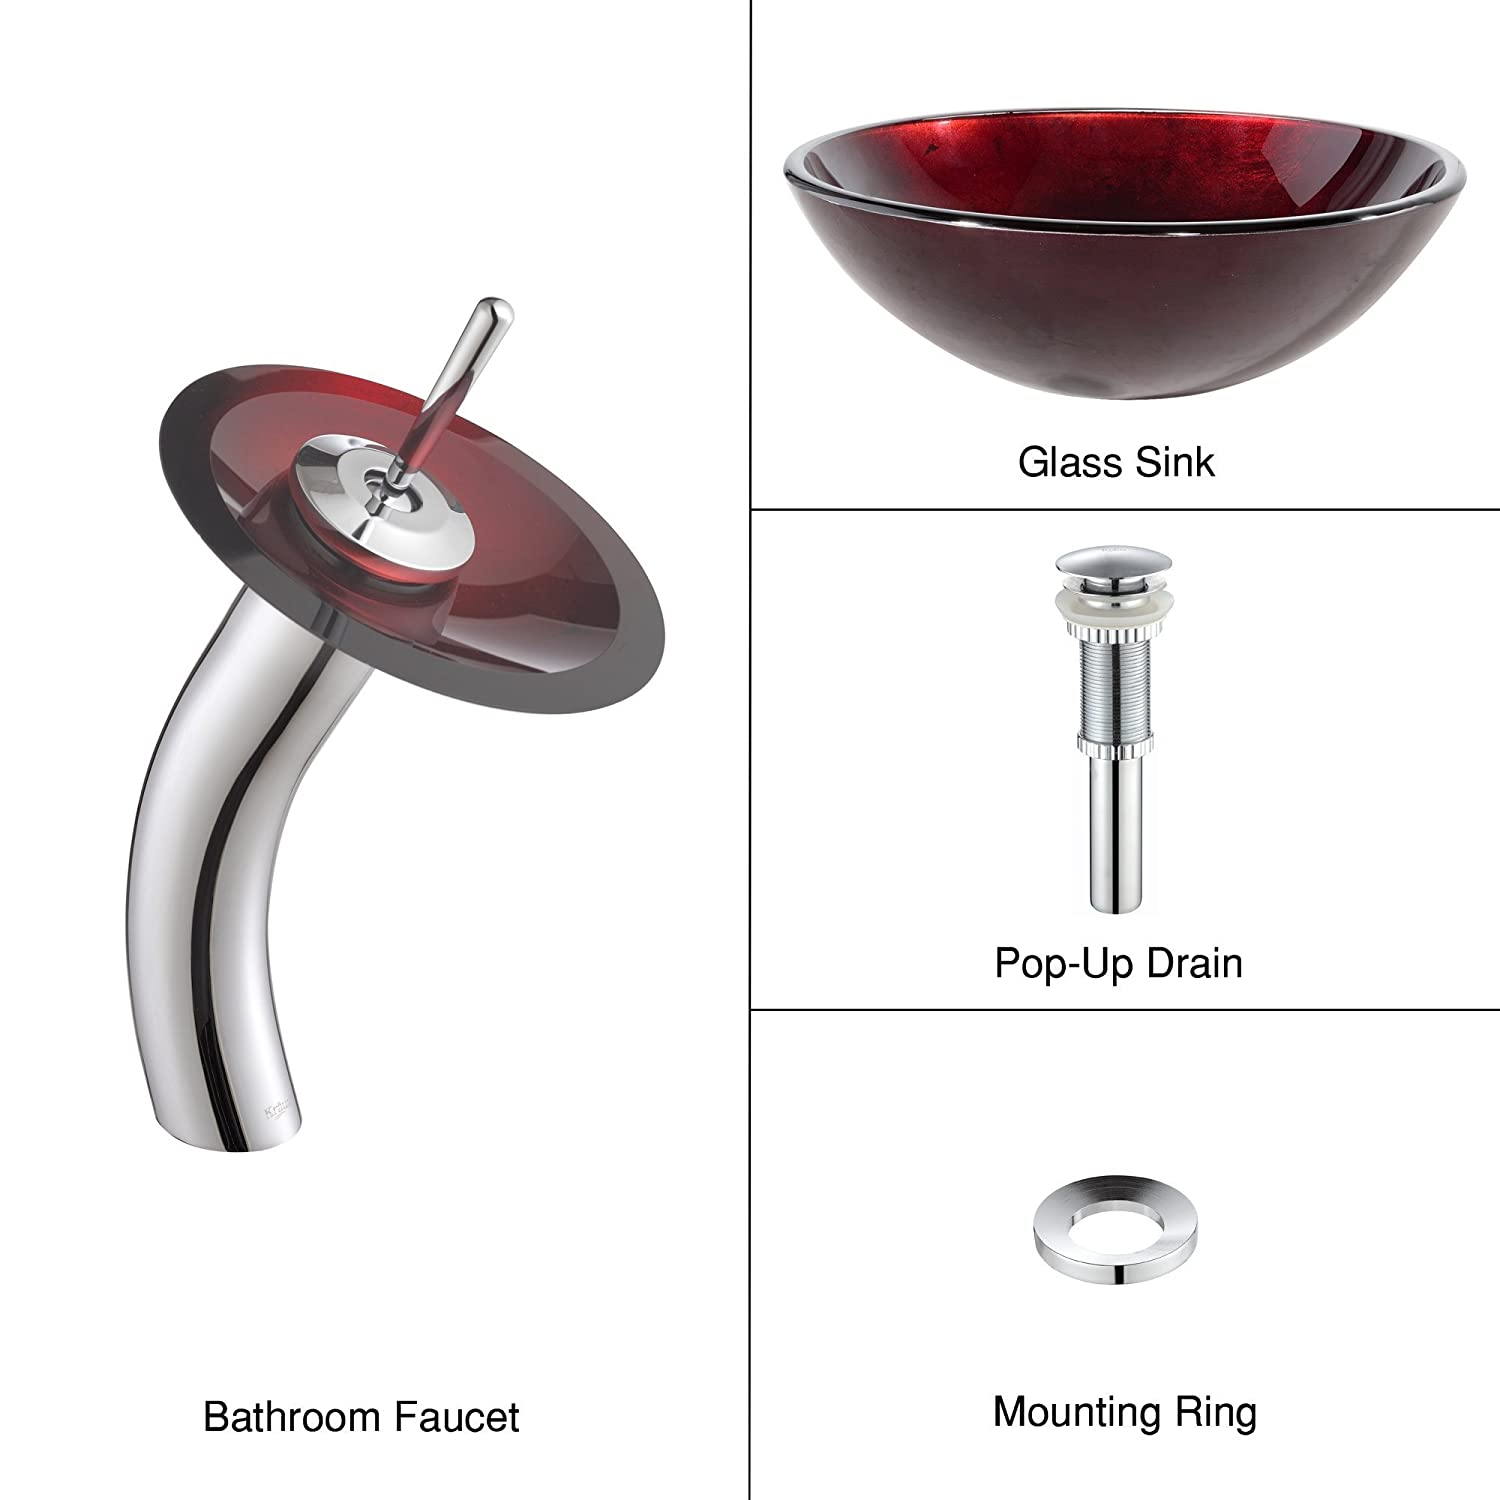 Kraus C GV 200 12mm 10CH Irruption Red Glass Vessel Sink And Waterfall  Faucet Chrome     Amazon.com